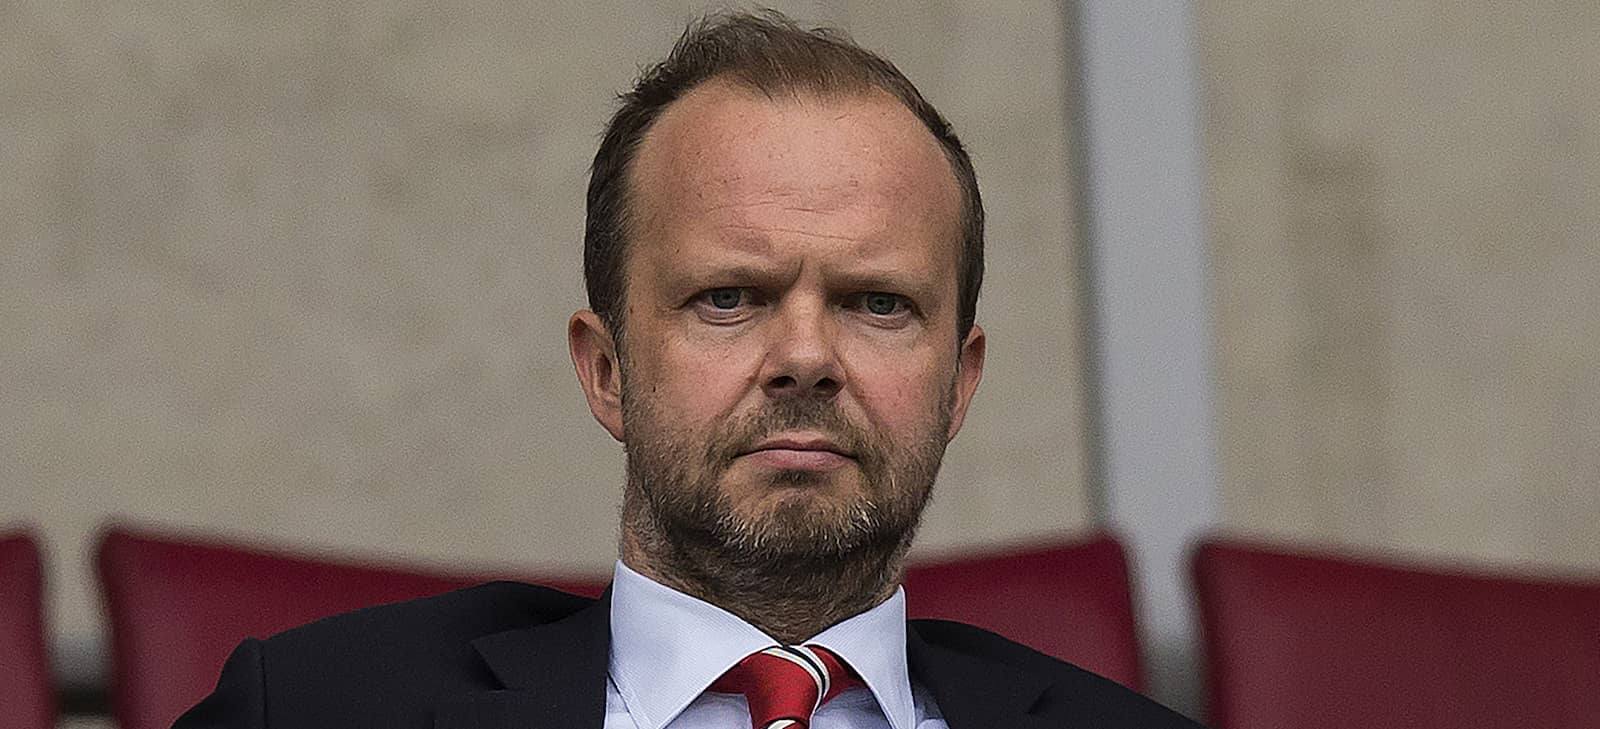 Video: Manchester United fans loudly protest Glazers, Ed Woodward during win over Norwich City